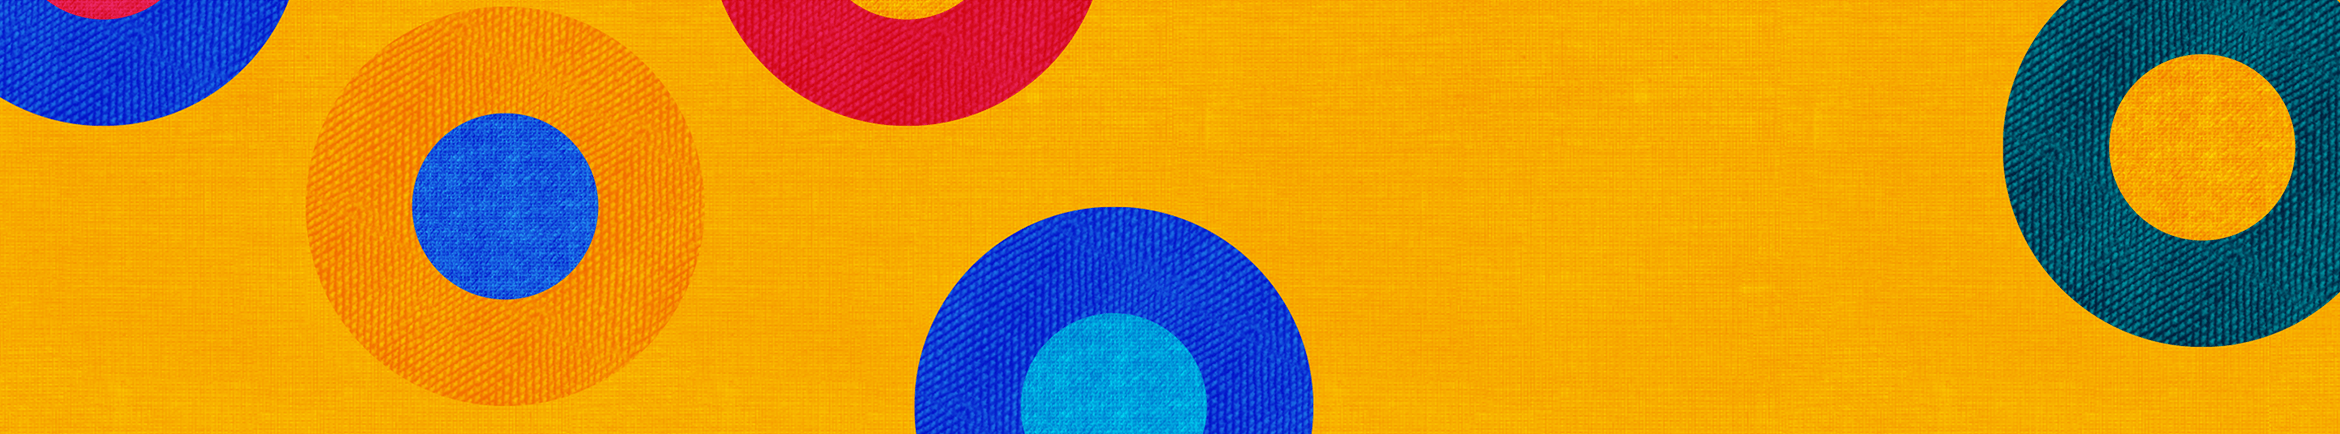 yellow background with multicoloured circles